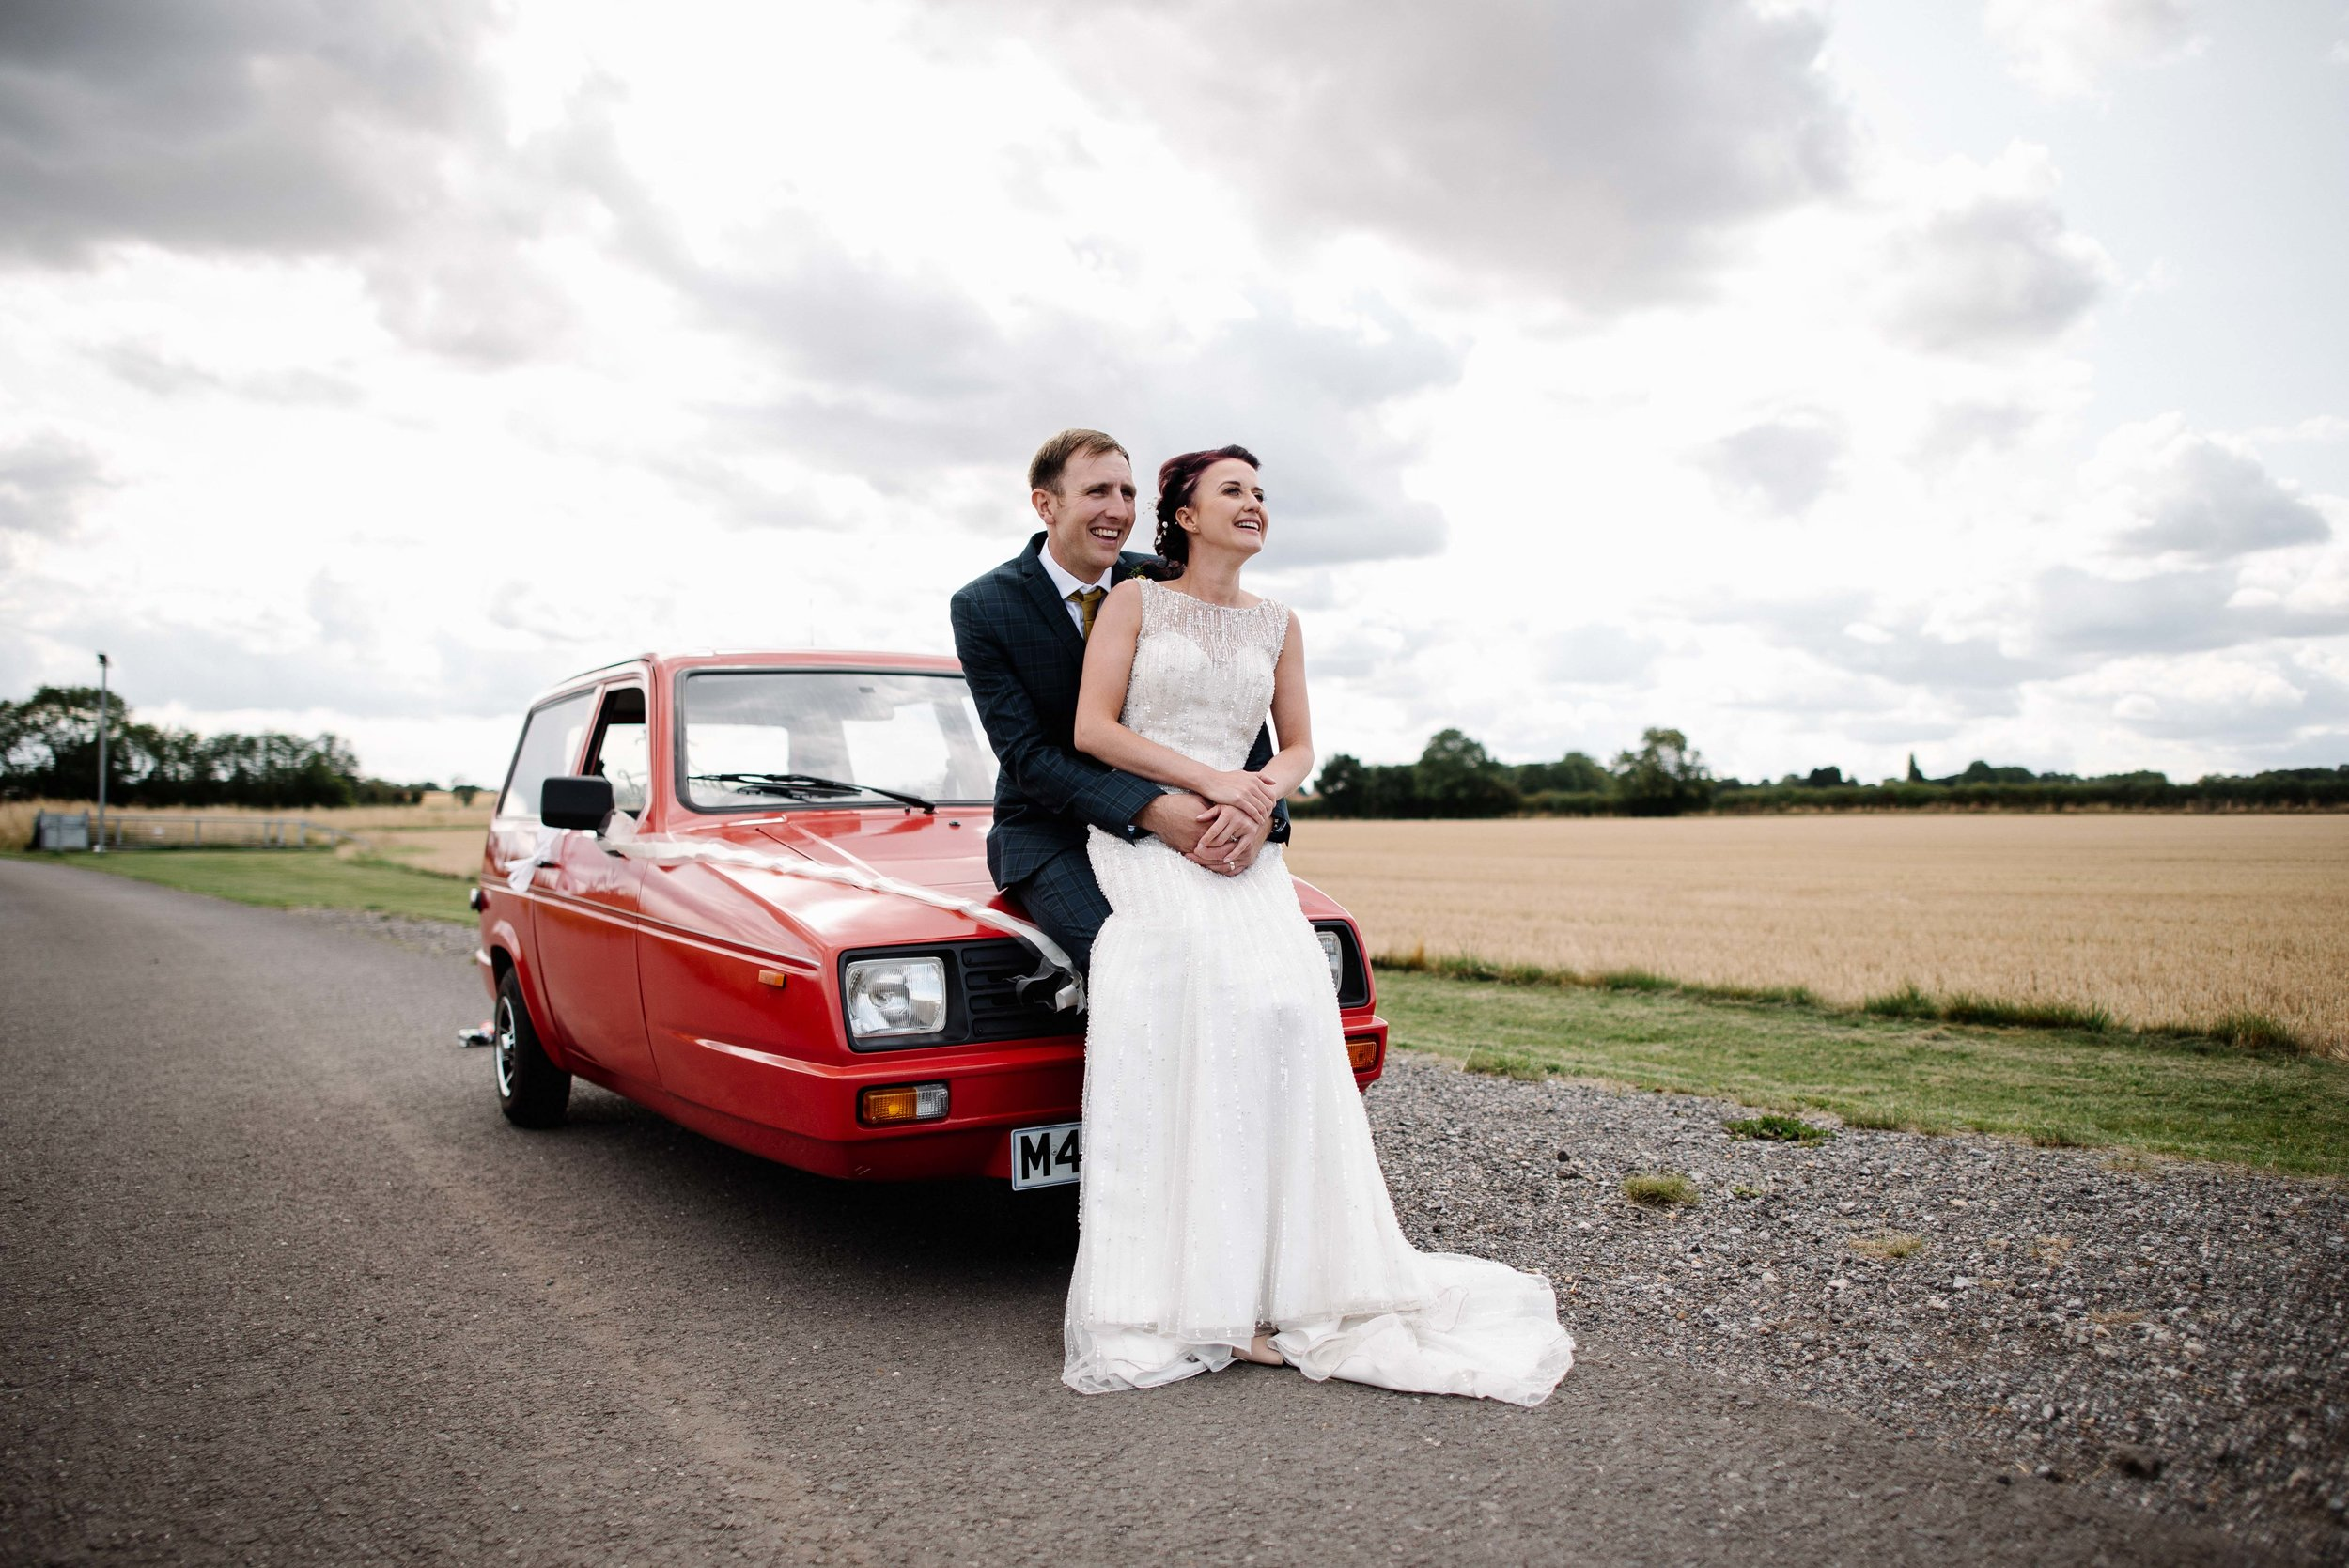 laura + andy - a beautiful outdoor ceremony, a three-wheeled car and lots of dancing in a tipi